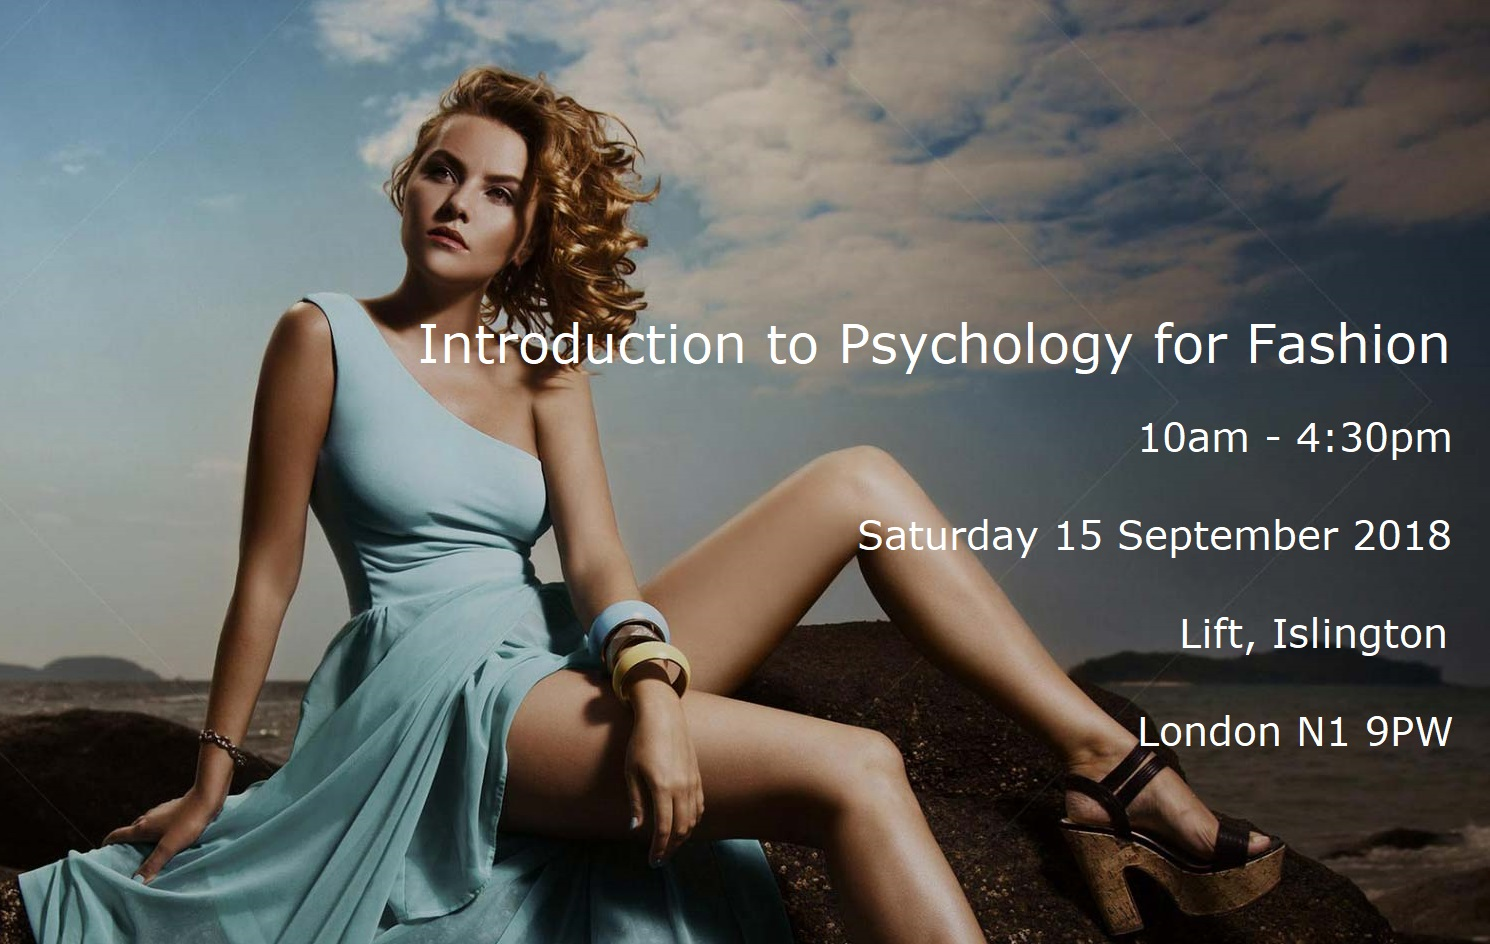 Psychology for fashion short course details